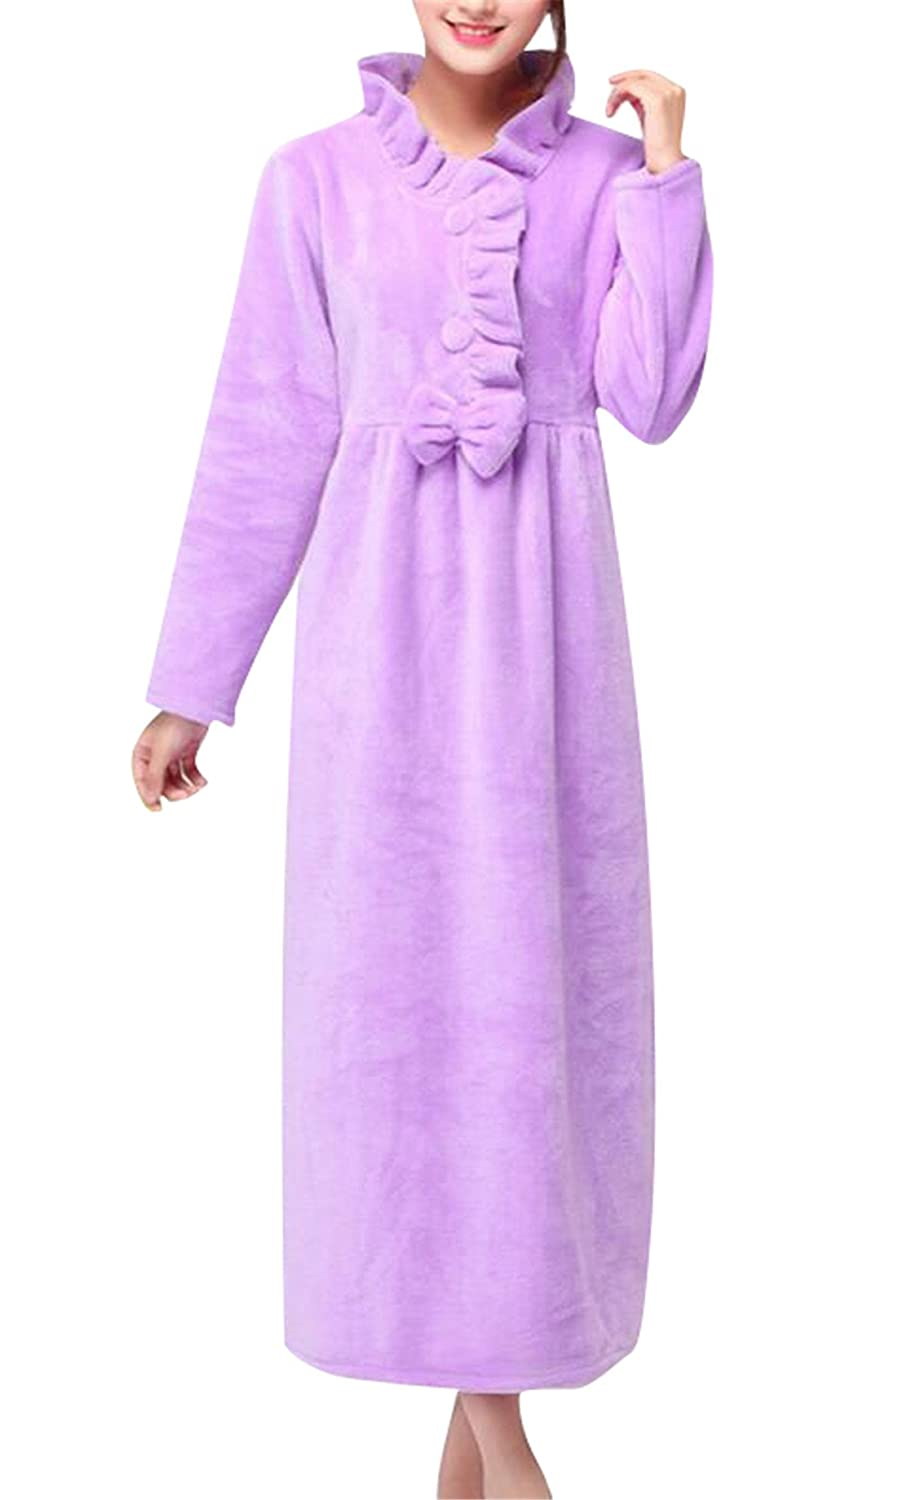 Domple Women's Pajamas Long Nightgown Fleece Sleepwear Dress